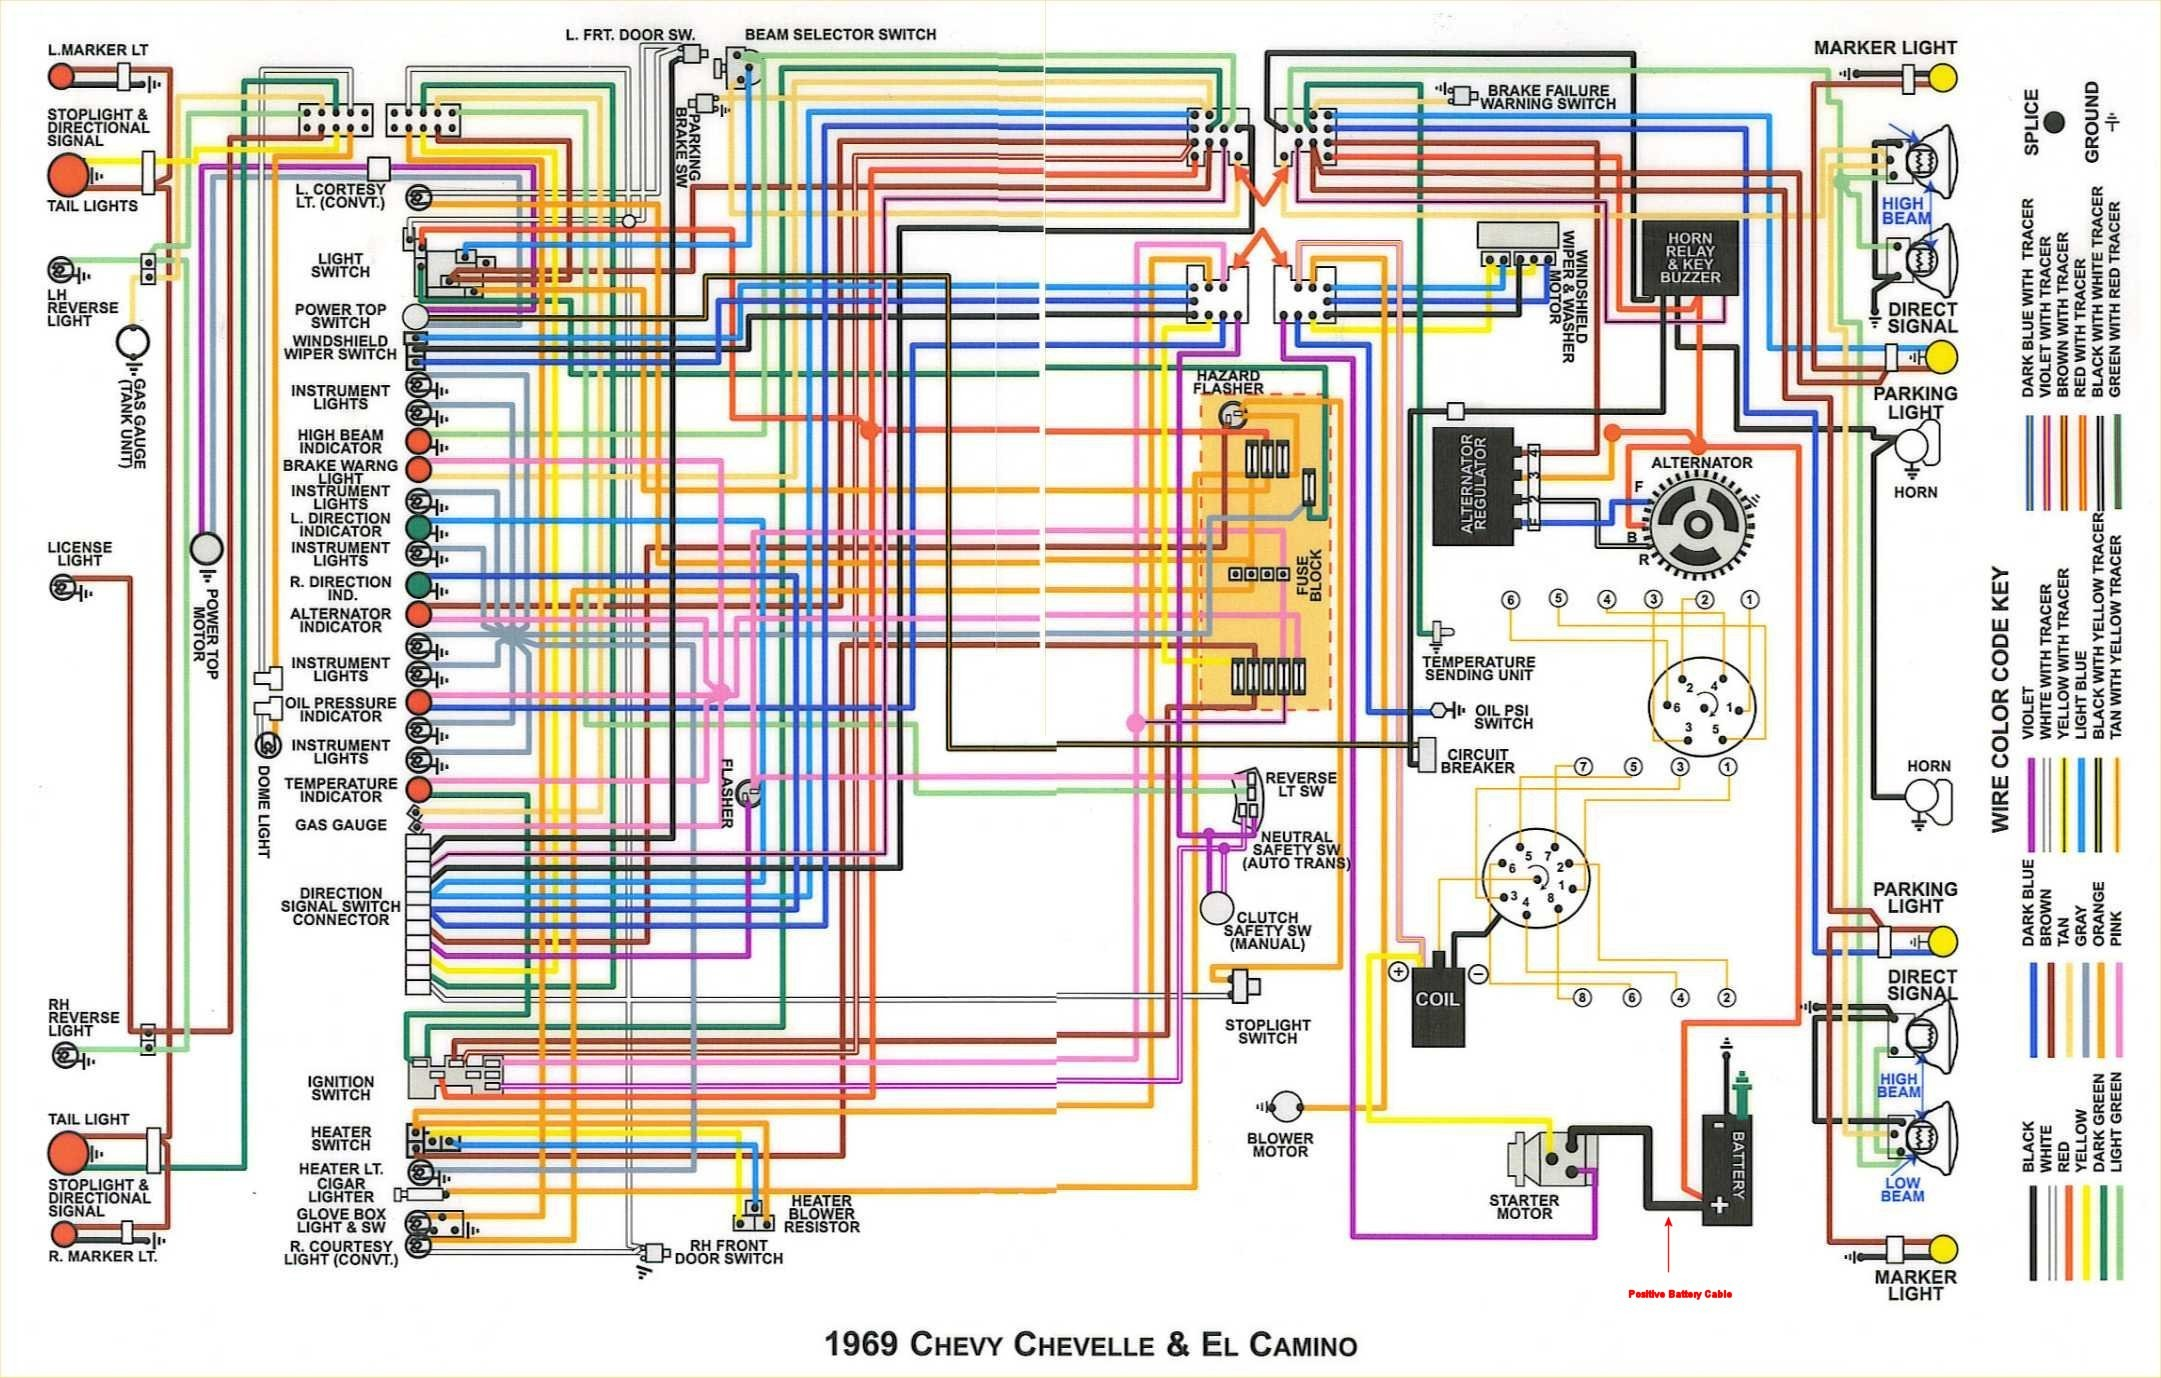 1968 Camaro Interior Wiring Diagram | Wiring Diagram on 68 camaro fuse box diagram, 1968 camaro engine diagram, 68 chevelle ignition diagram, 68 camaro wiring diagram pdf, 68 camaro steering wheel diagram, 68 camaro wiring harness connectors, 68 camaro console wiring diagram, 68 camaro ignition wiring, 1967 camaro wiring diagram, 68 camaro radio wiring diagram, 68 camaro brake line diagram, 69 camaro wiring diagram, 68 camaro wire diagram, 1967 camaro headlight assembly diagram, 68 camaro engine wiring diagram, 1968 camaro wiring diagram, 68 camaro suspension diagram, 68 camaro horn wiring diagram, 68 camaro alternator wiring diagram, 68 camaro rs,